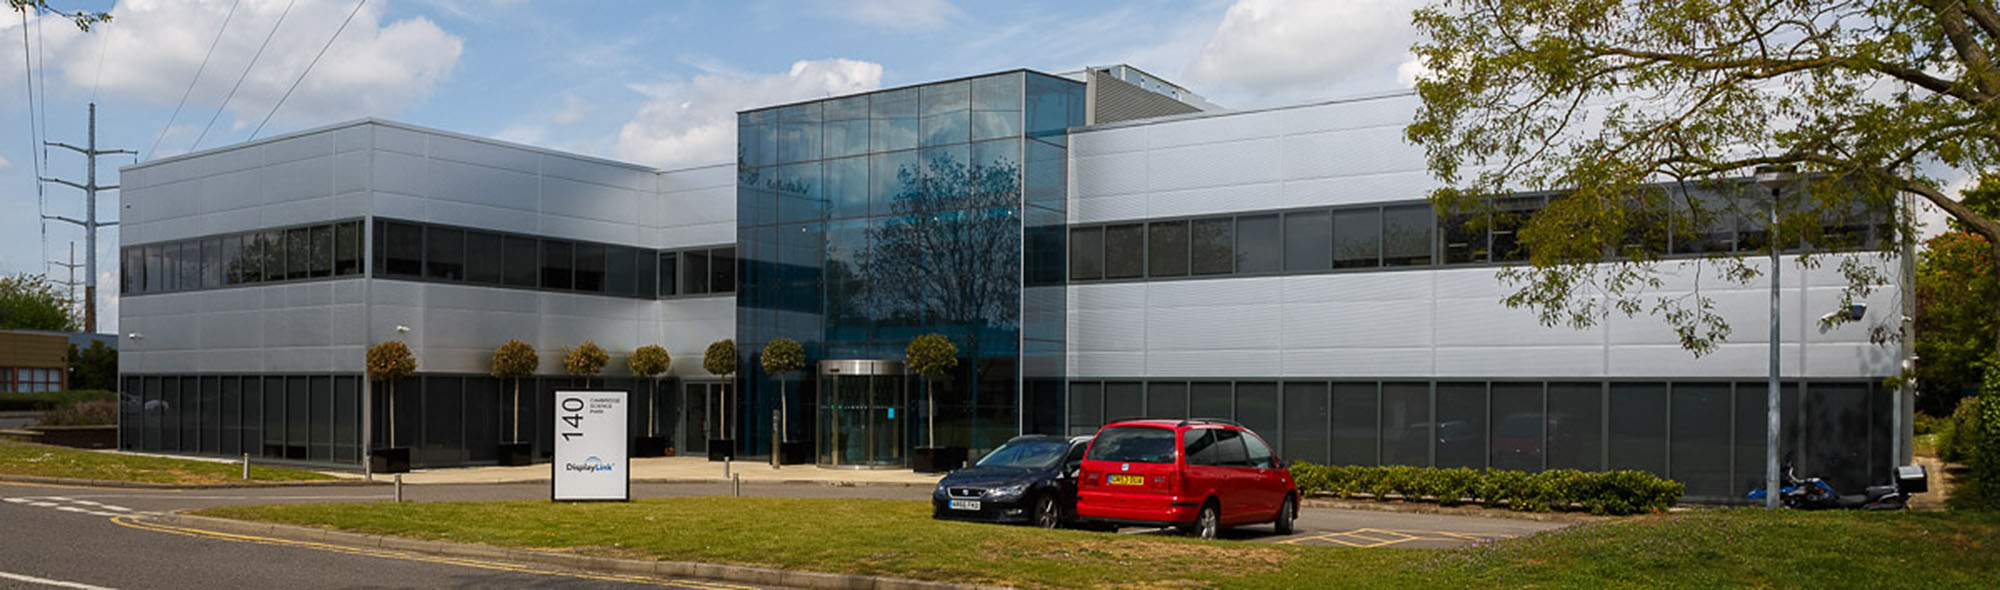 140 Cambridge Science Park